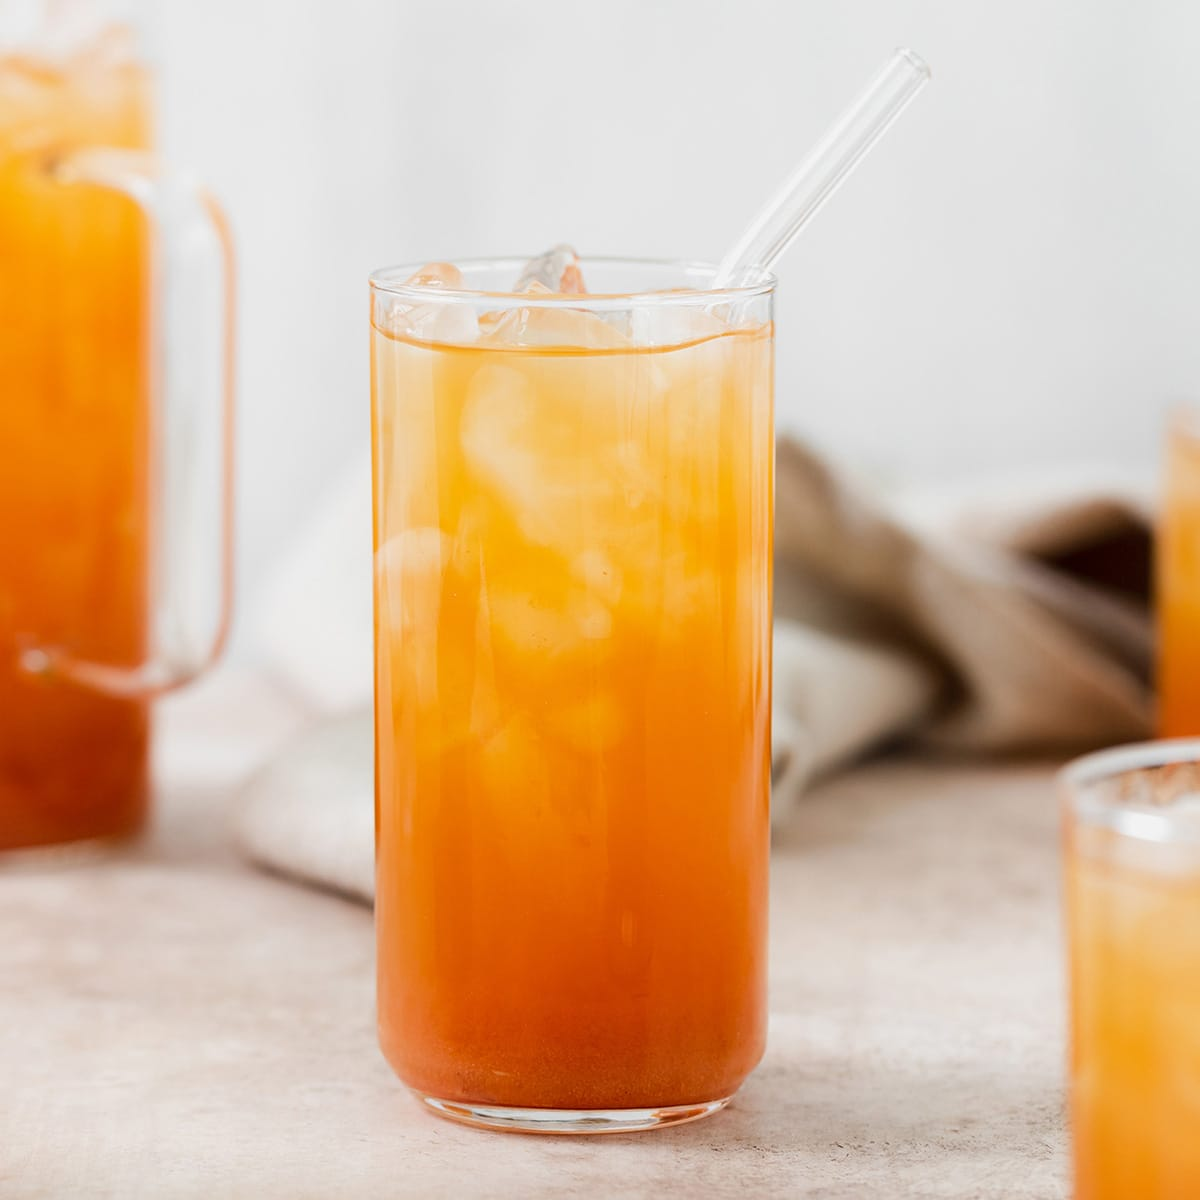 Iced Guava Black Tea shown in a tall glass with ice and a glass straw on beige background. More glasses and a jug full of iced tea partially in the frame on both left and right. Beige tea towel blurry in the background.